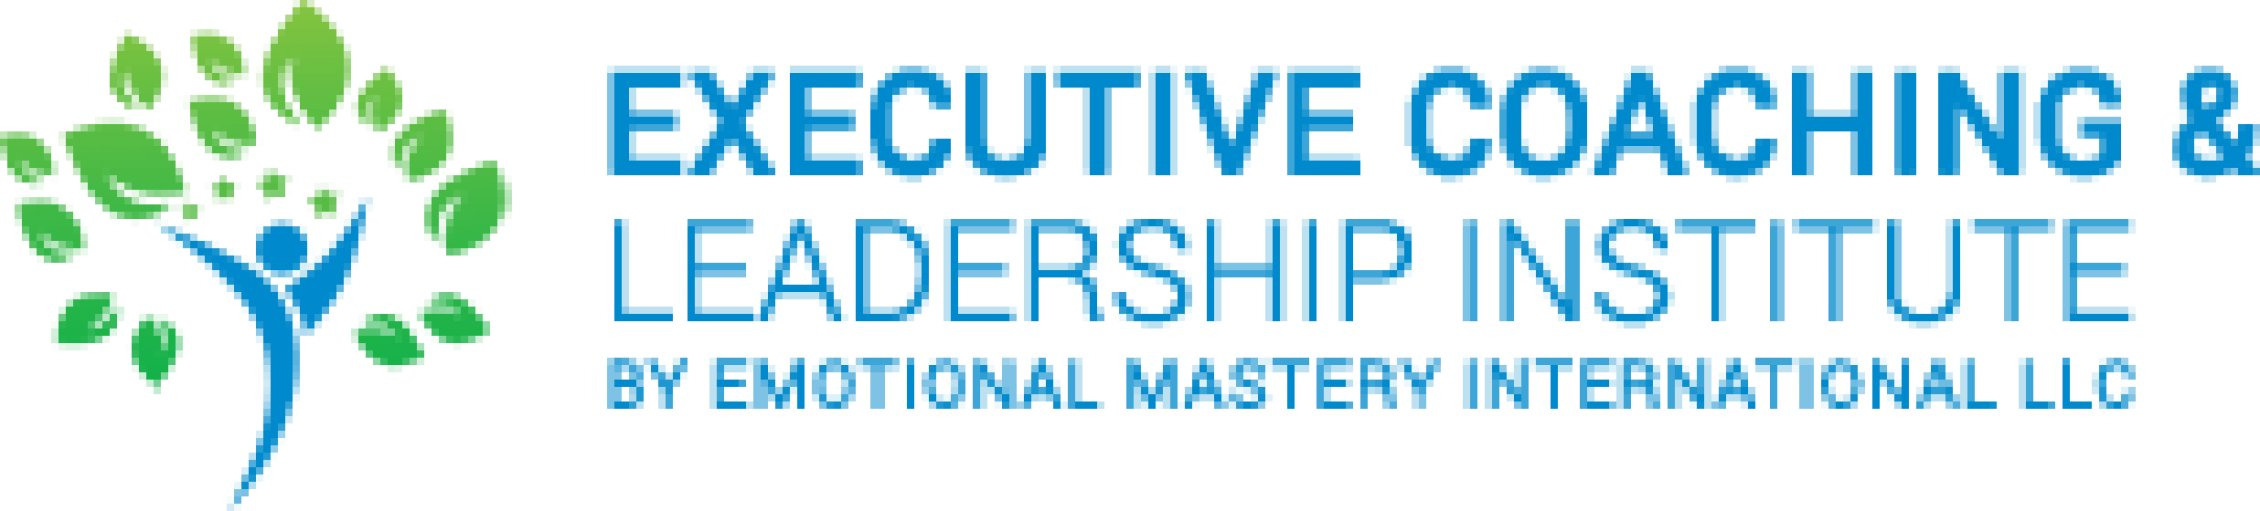 Emotional Mastery International LLC